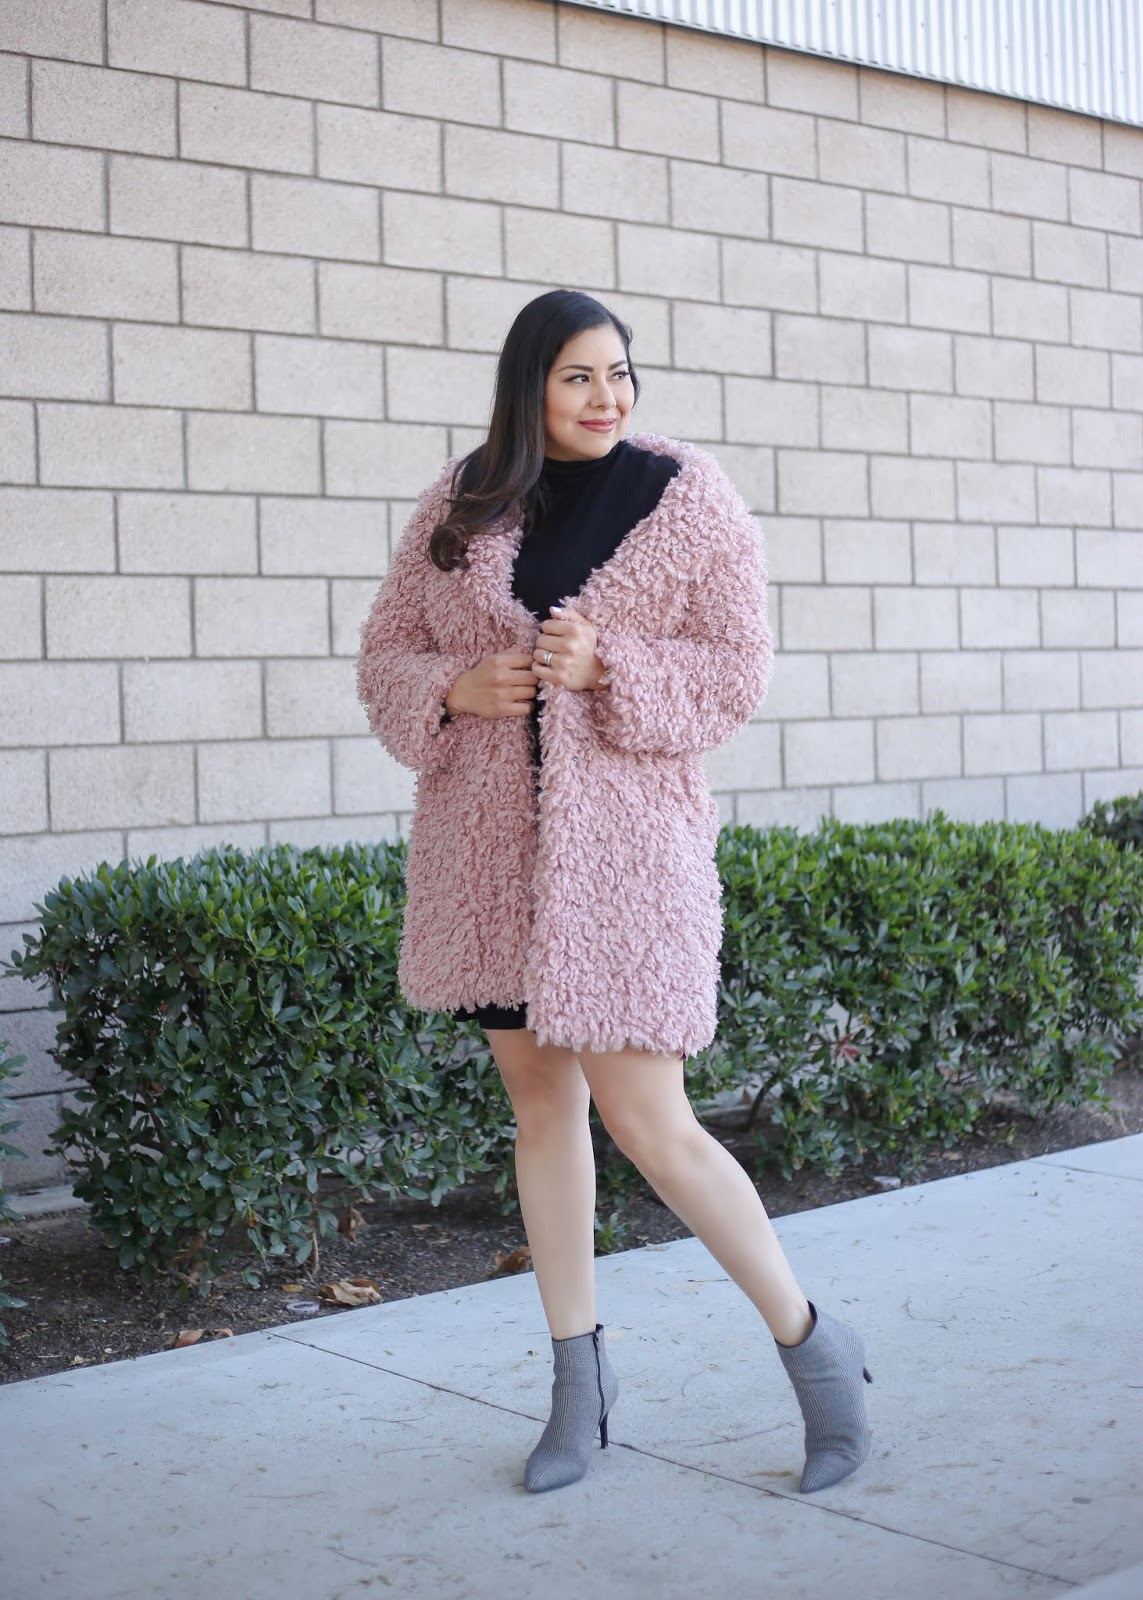 how to style a teddy bear coat, san diego fashion blogger winter edition